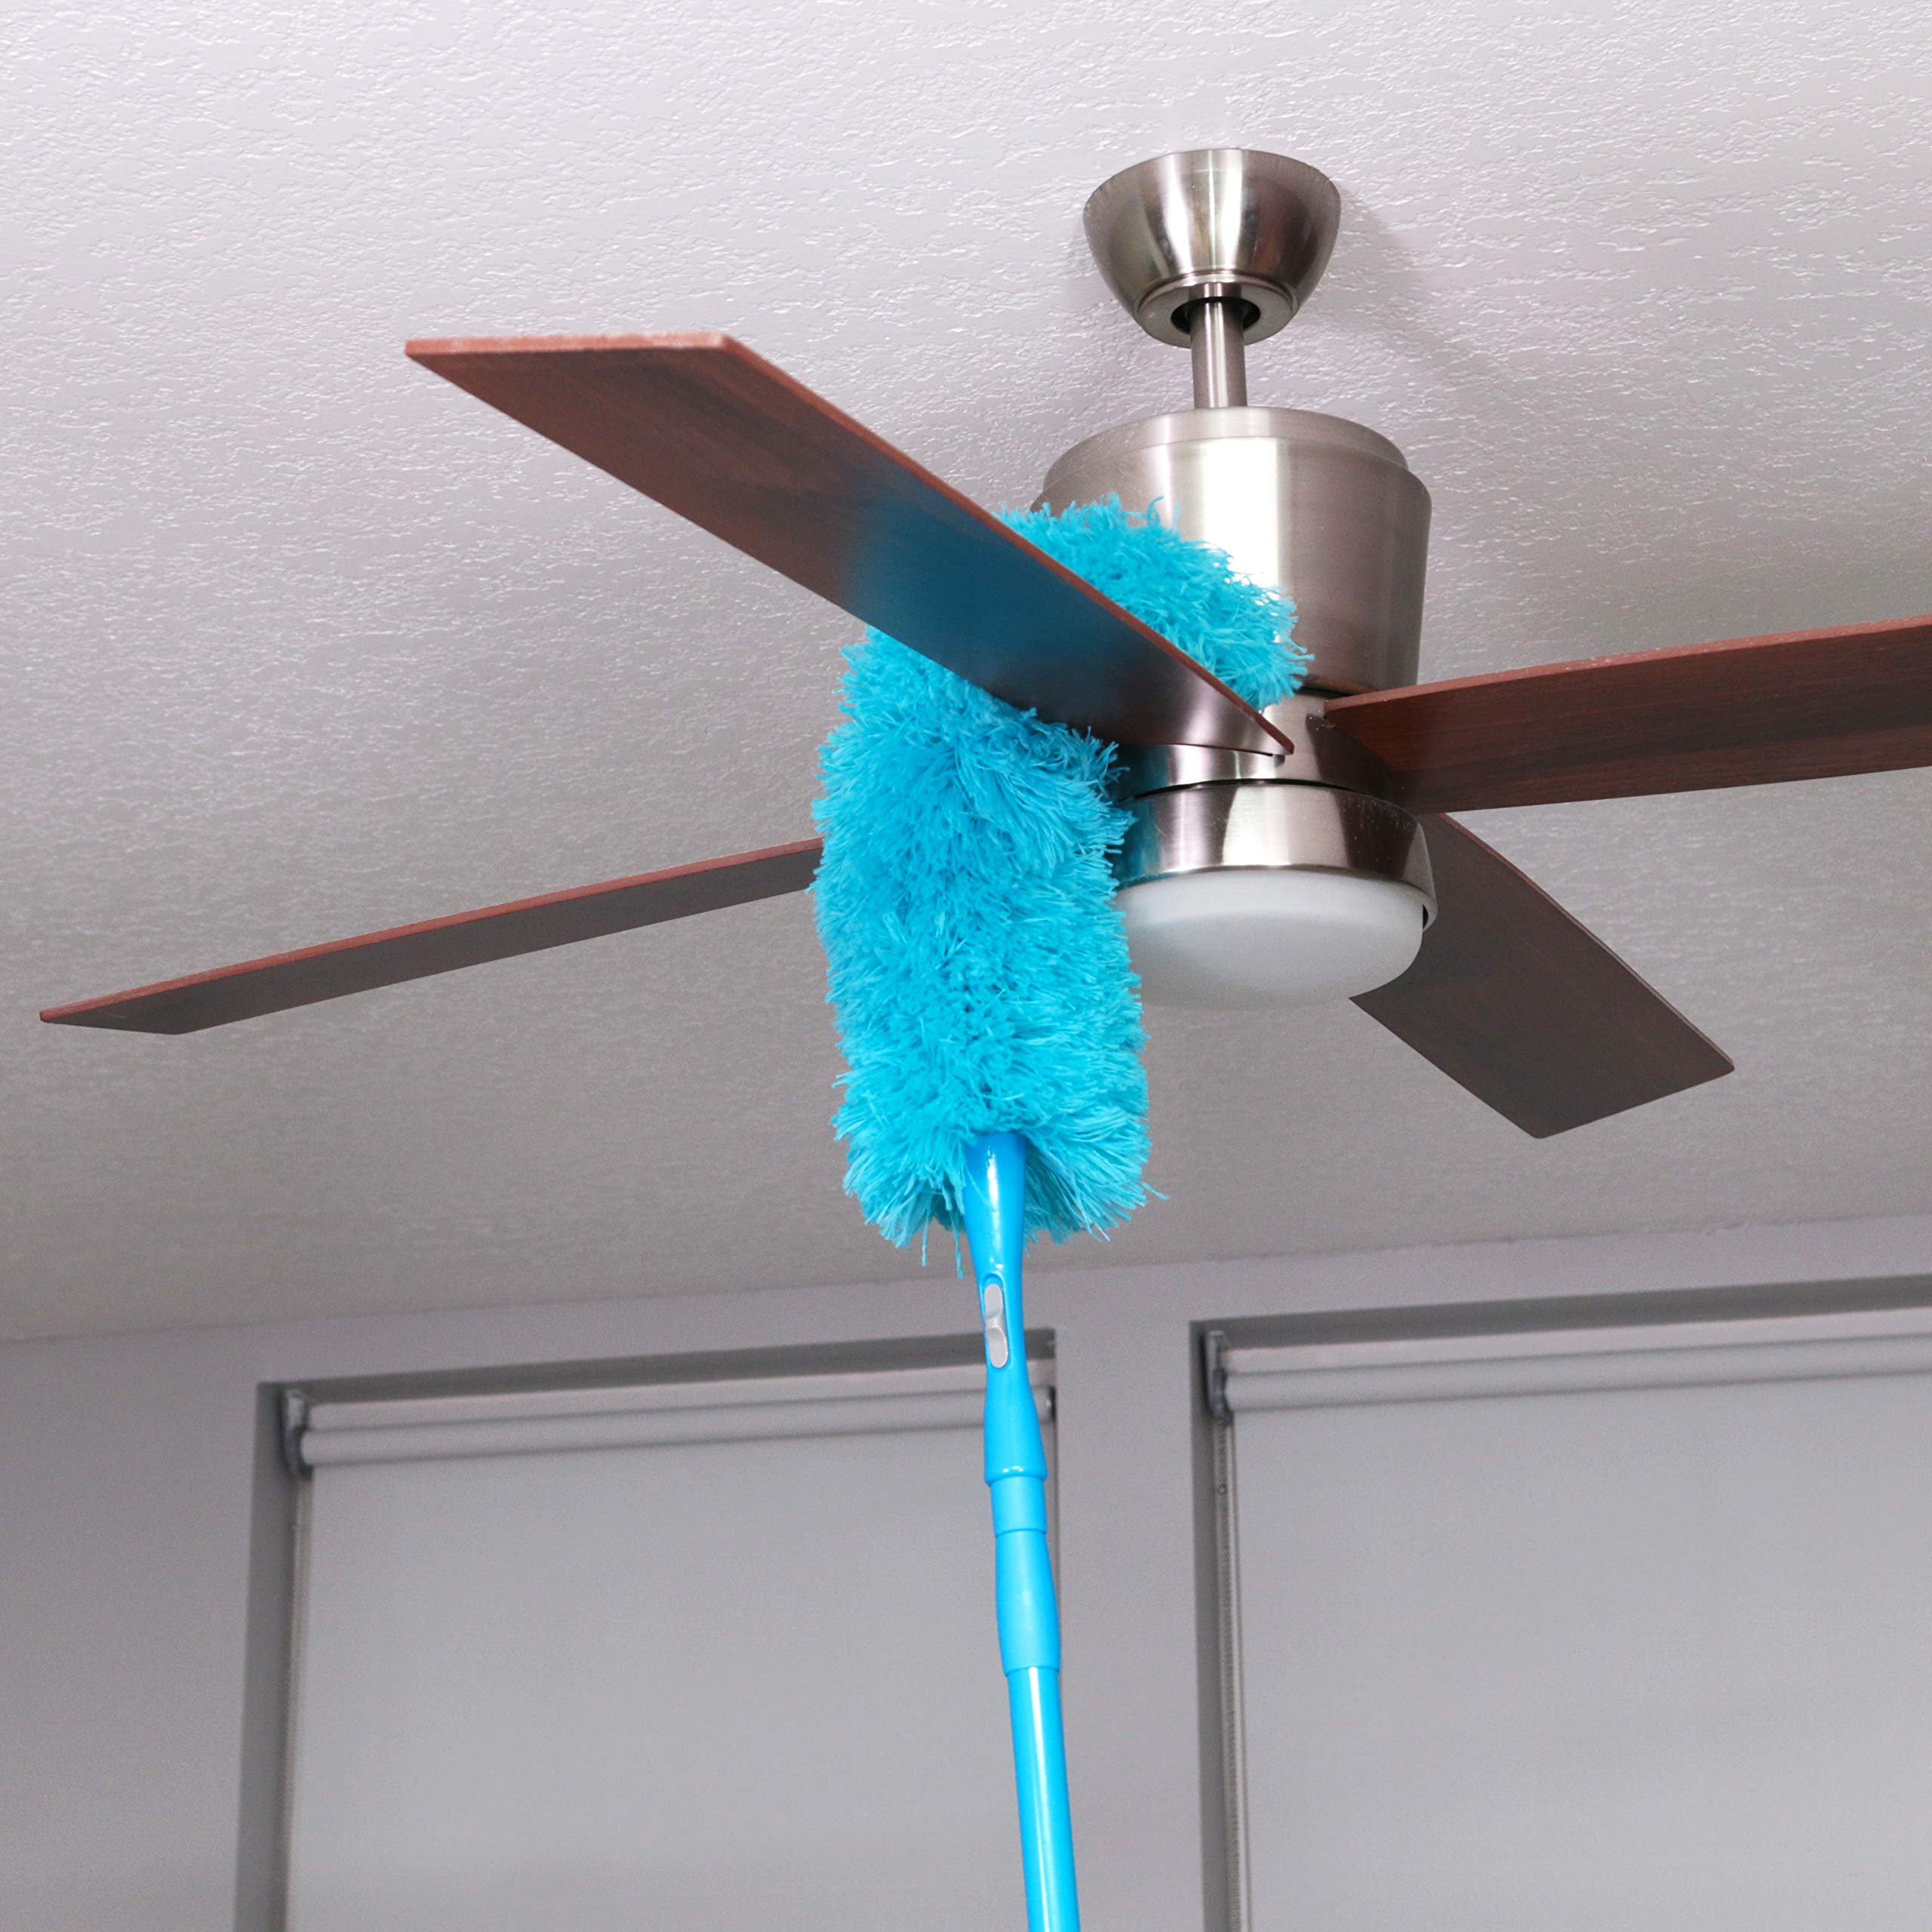 Hank HouseHold TriboDuster with Bonus Blinds Cleaner - Microfiber Duster for Cleaning with Extendable Telescoping Pole Up to 5ft6''! Ceiling Fan Dusters, Cobweb/Spider Web Brush and Blind Duster by Hank HouseHold (Image #2)